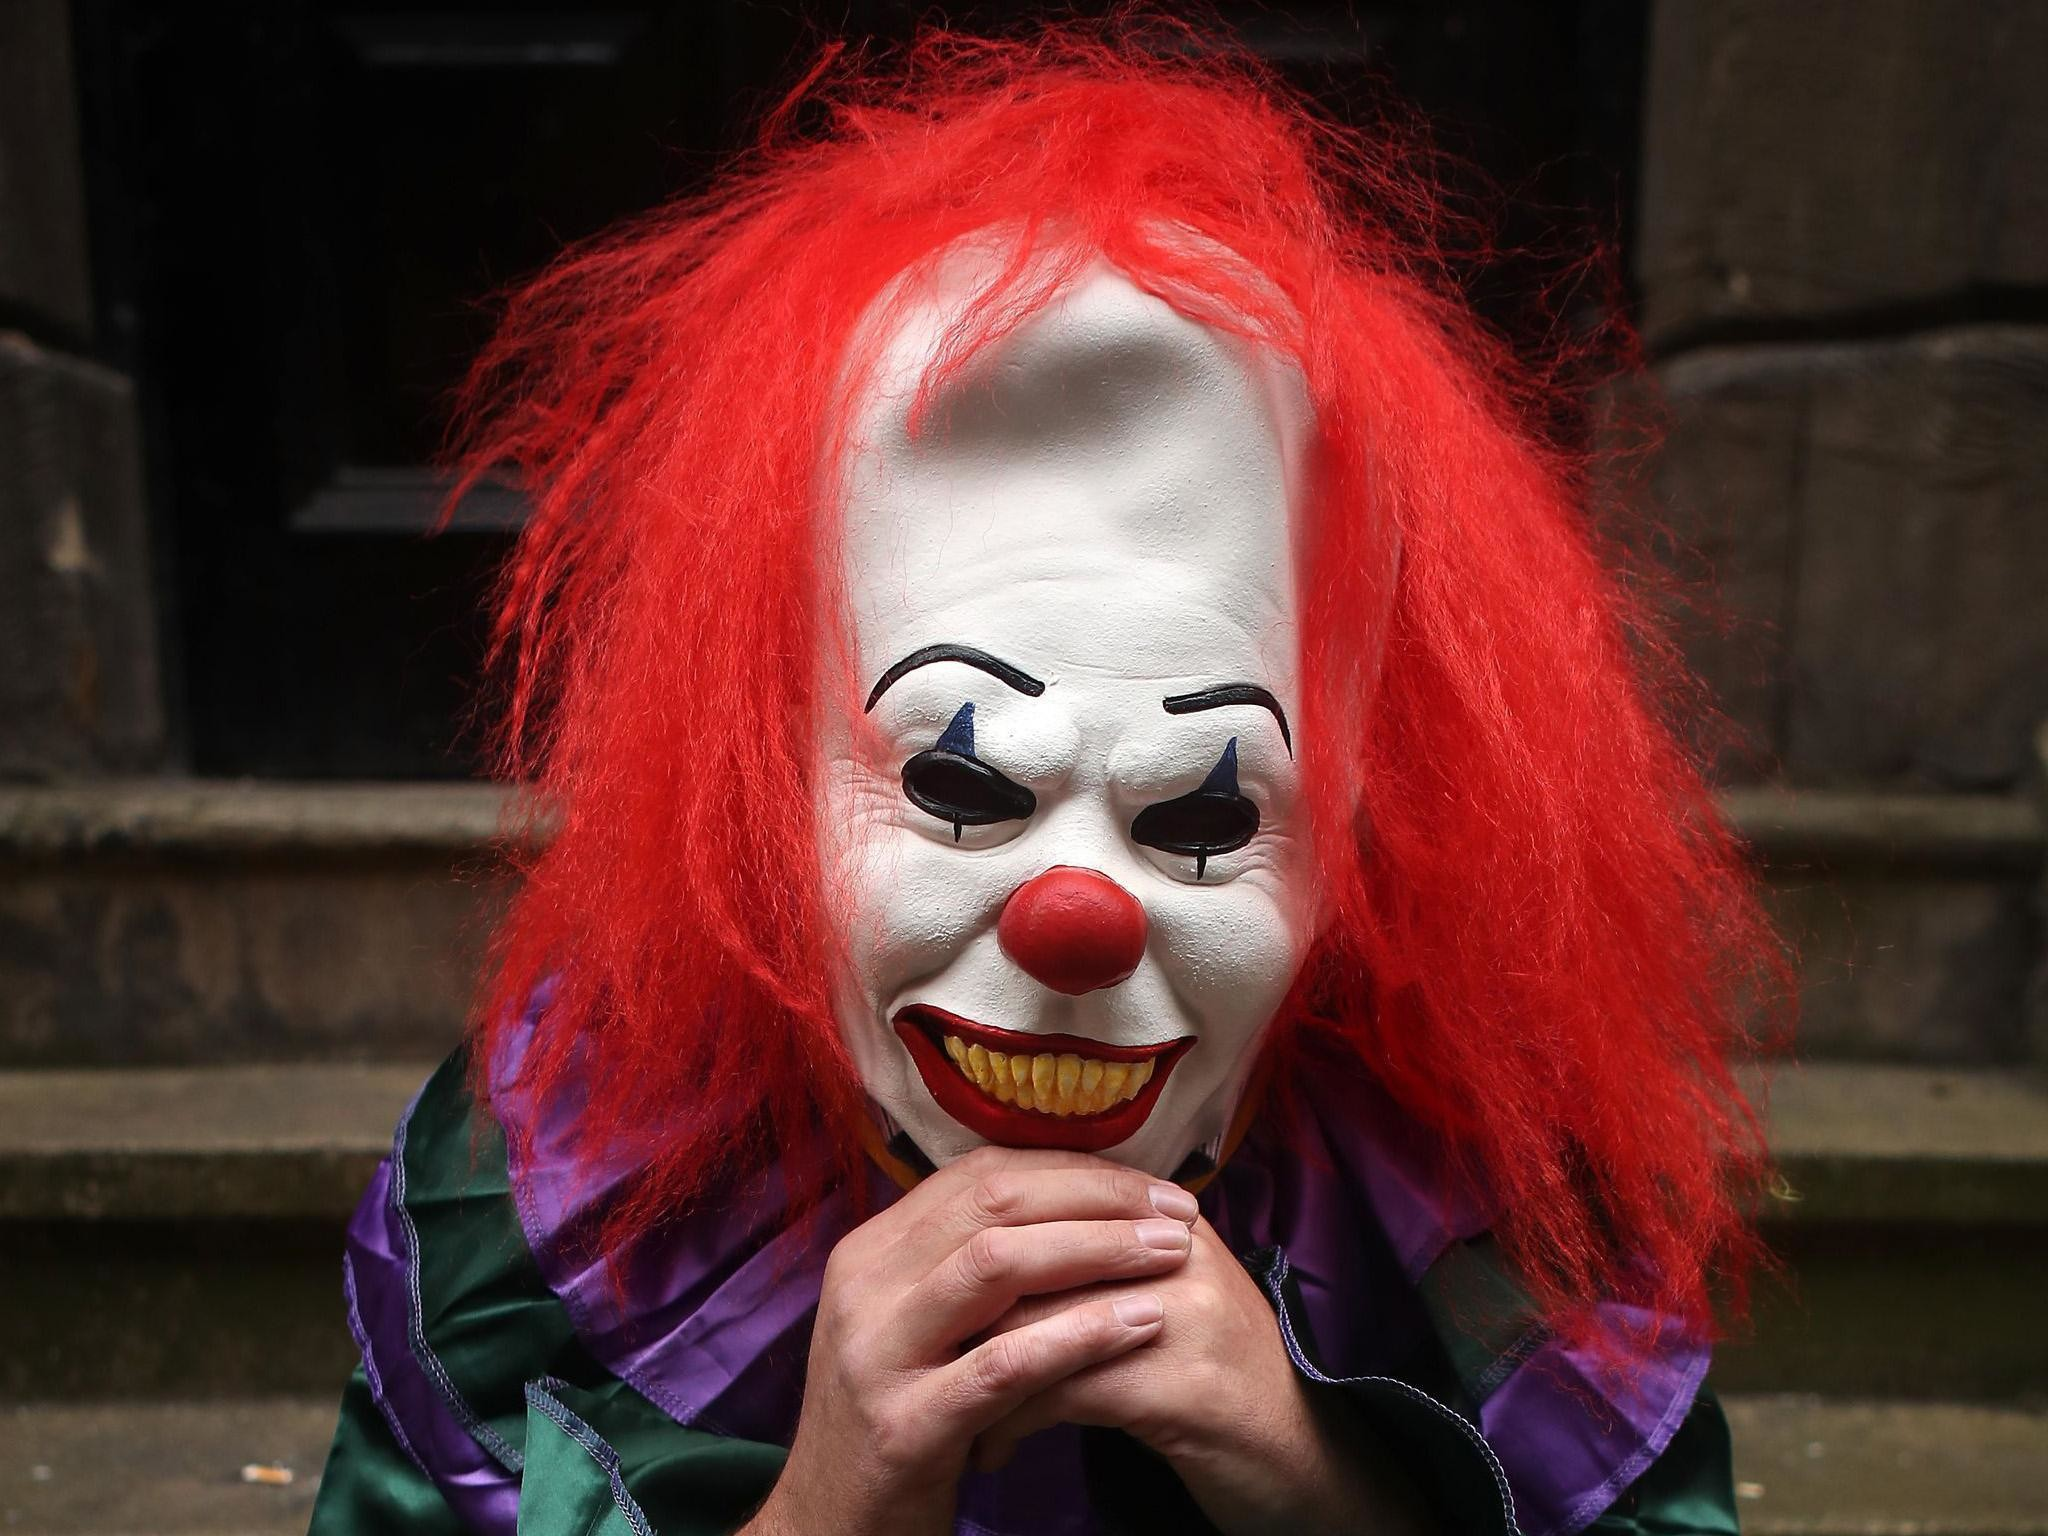 2048x1536 'Killer clown hunting' event with cash prizes to be held on Halloween in  Copenhagen | The Independent